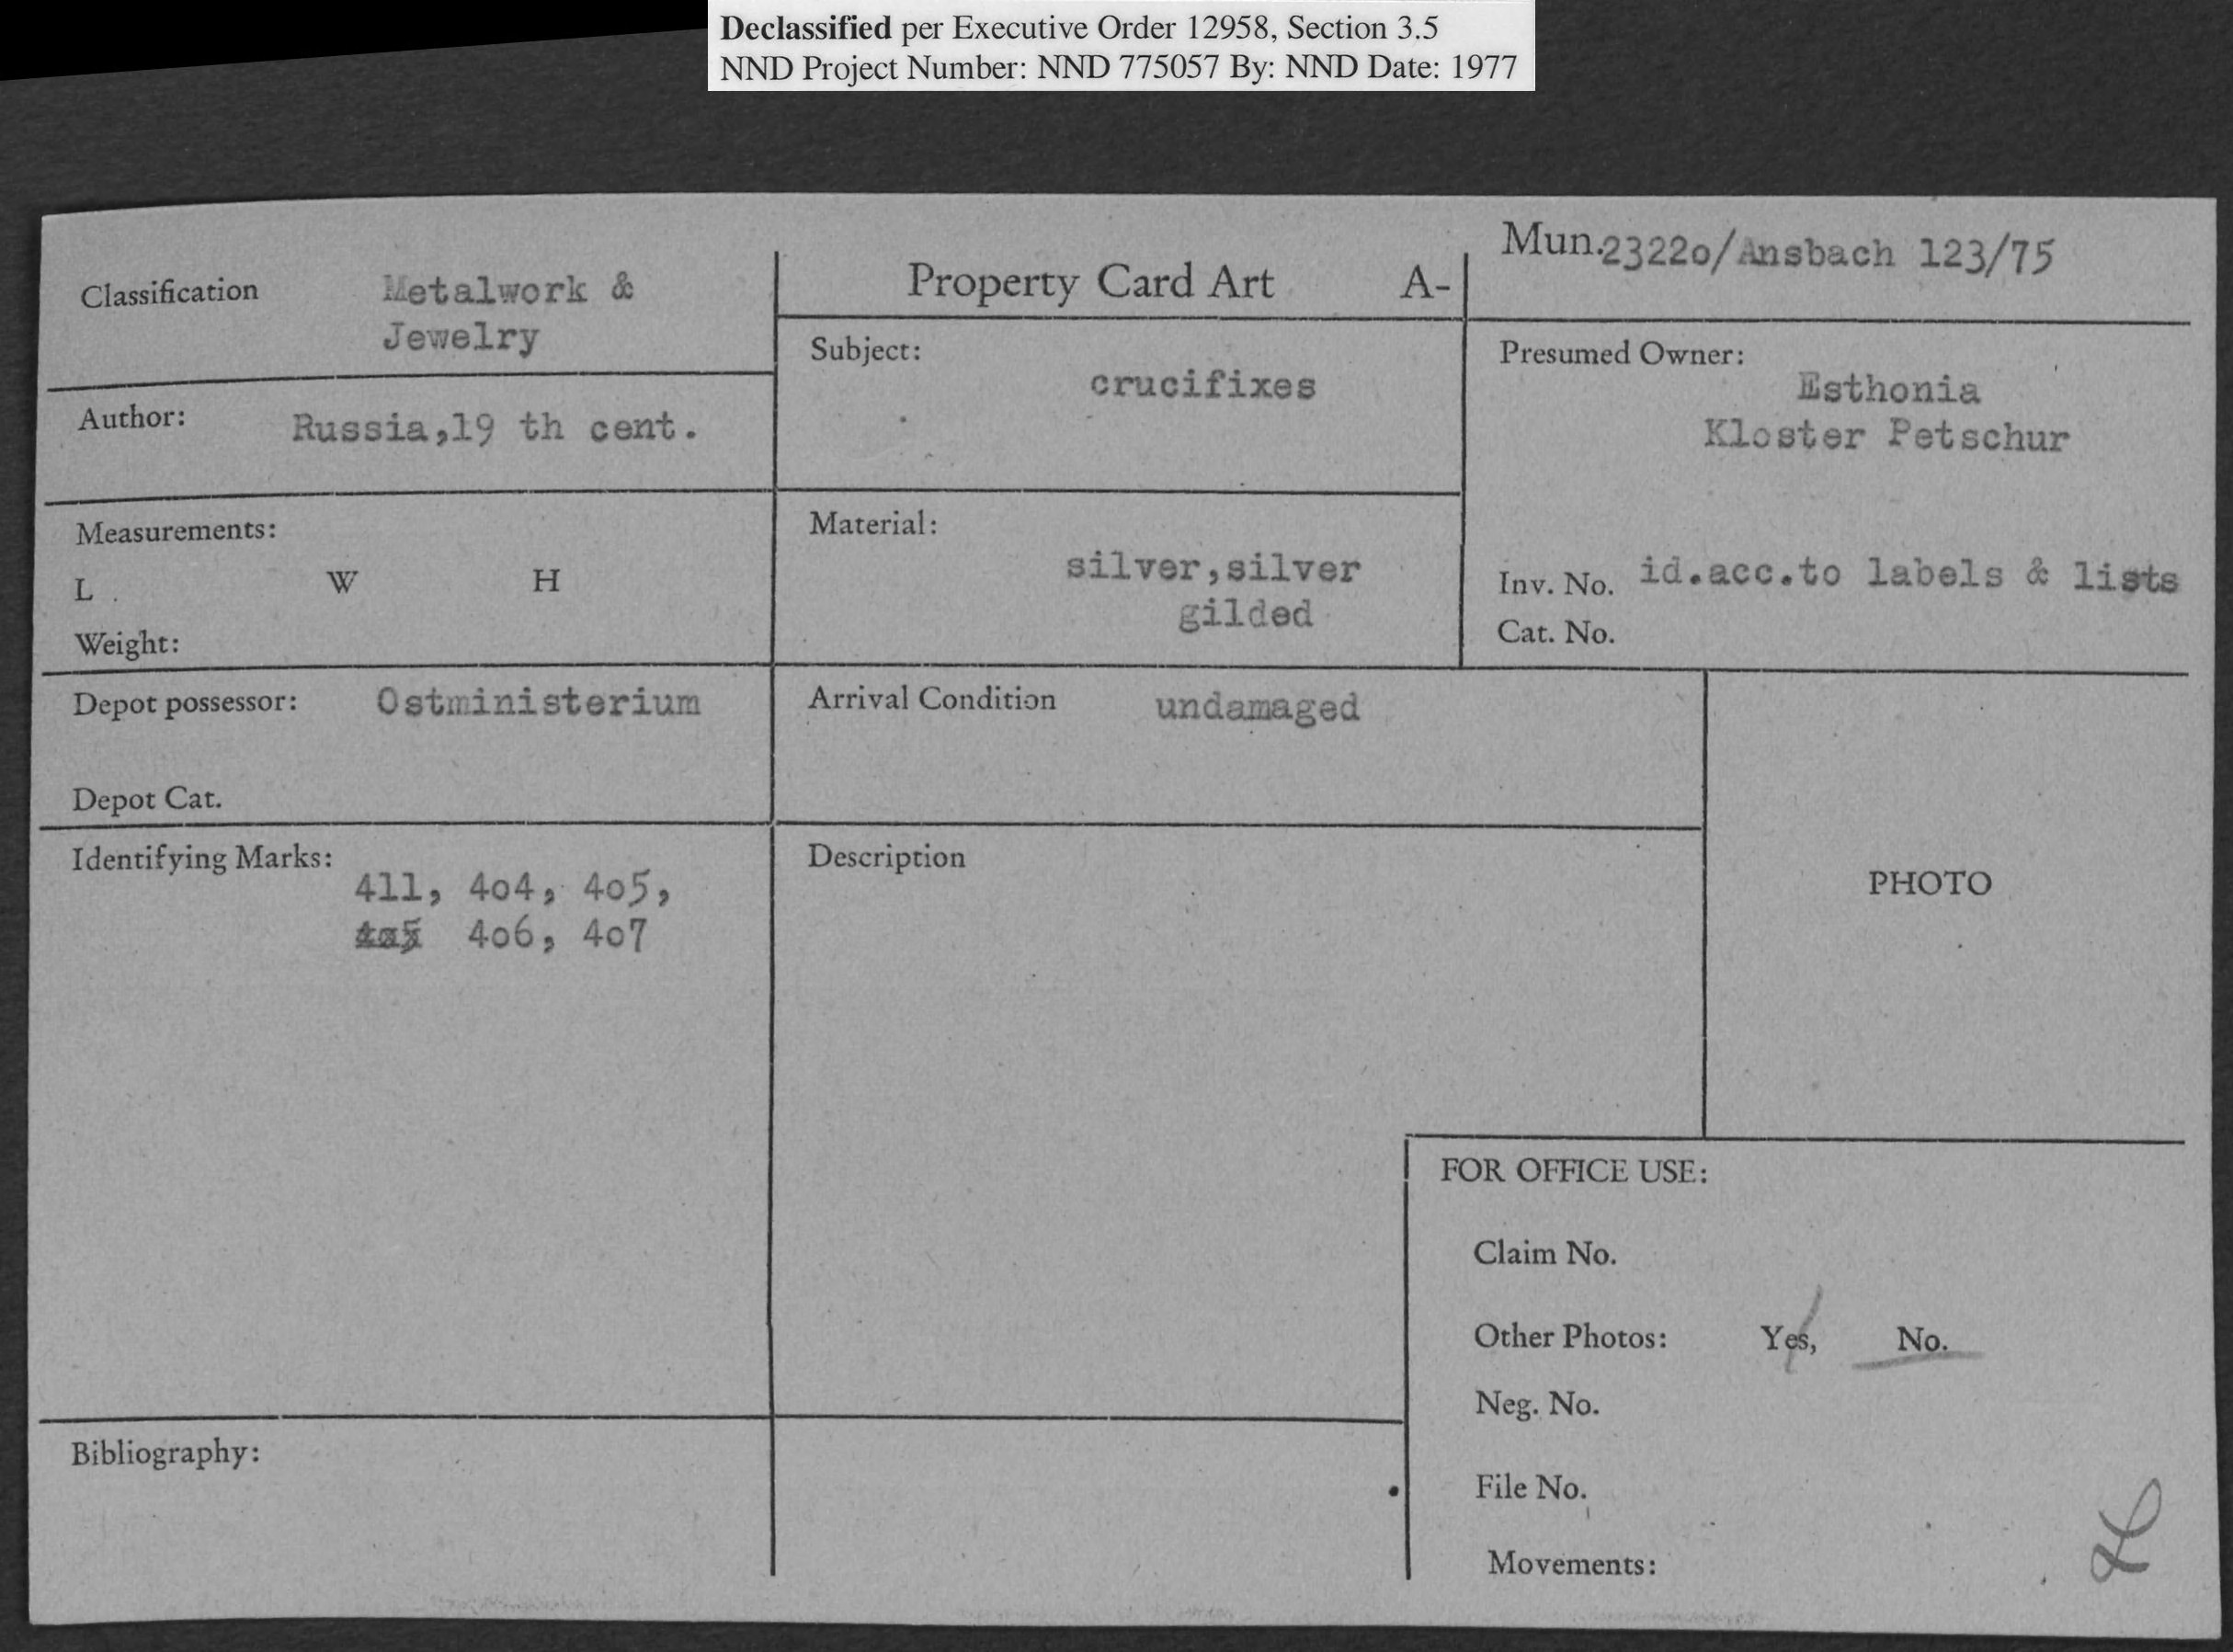 Metalwork & Jewelry: Crucifixes, Property Card Number 23220/Ansbach 123/75